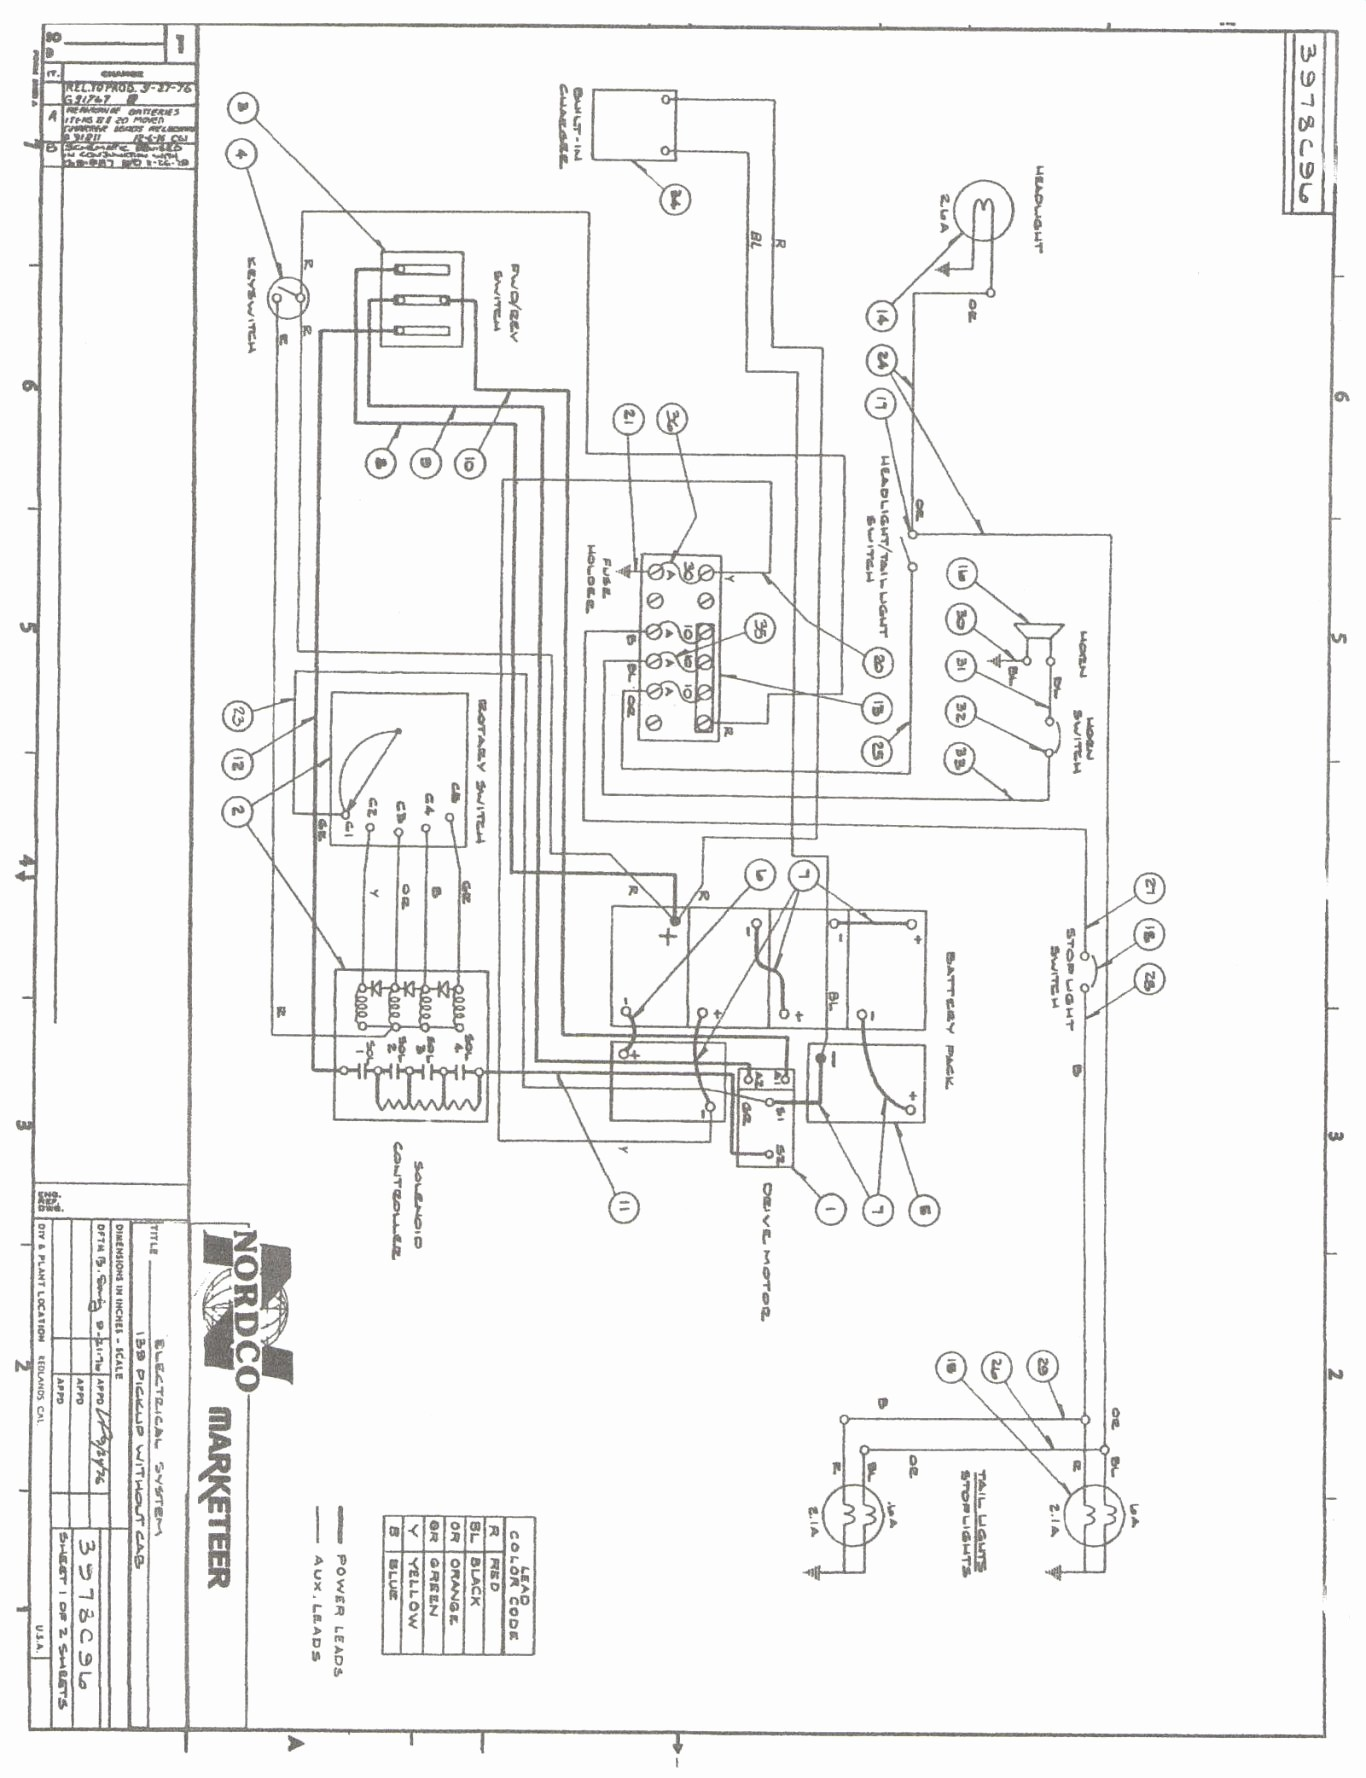 1987 Ez Go Gas Golf Cart Wiring Diagram - Wiring Diagram